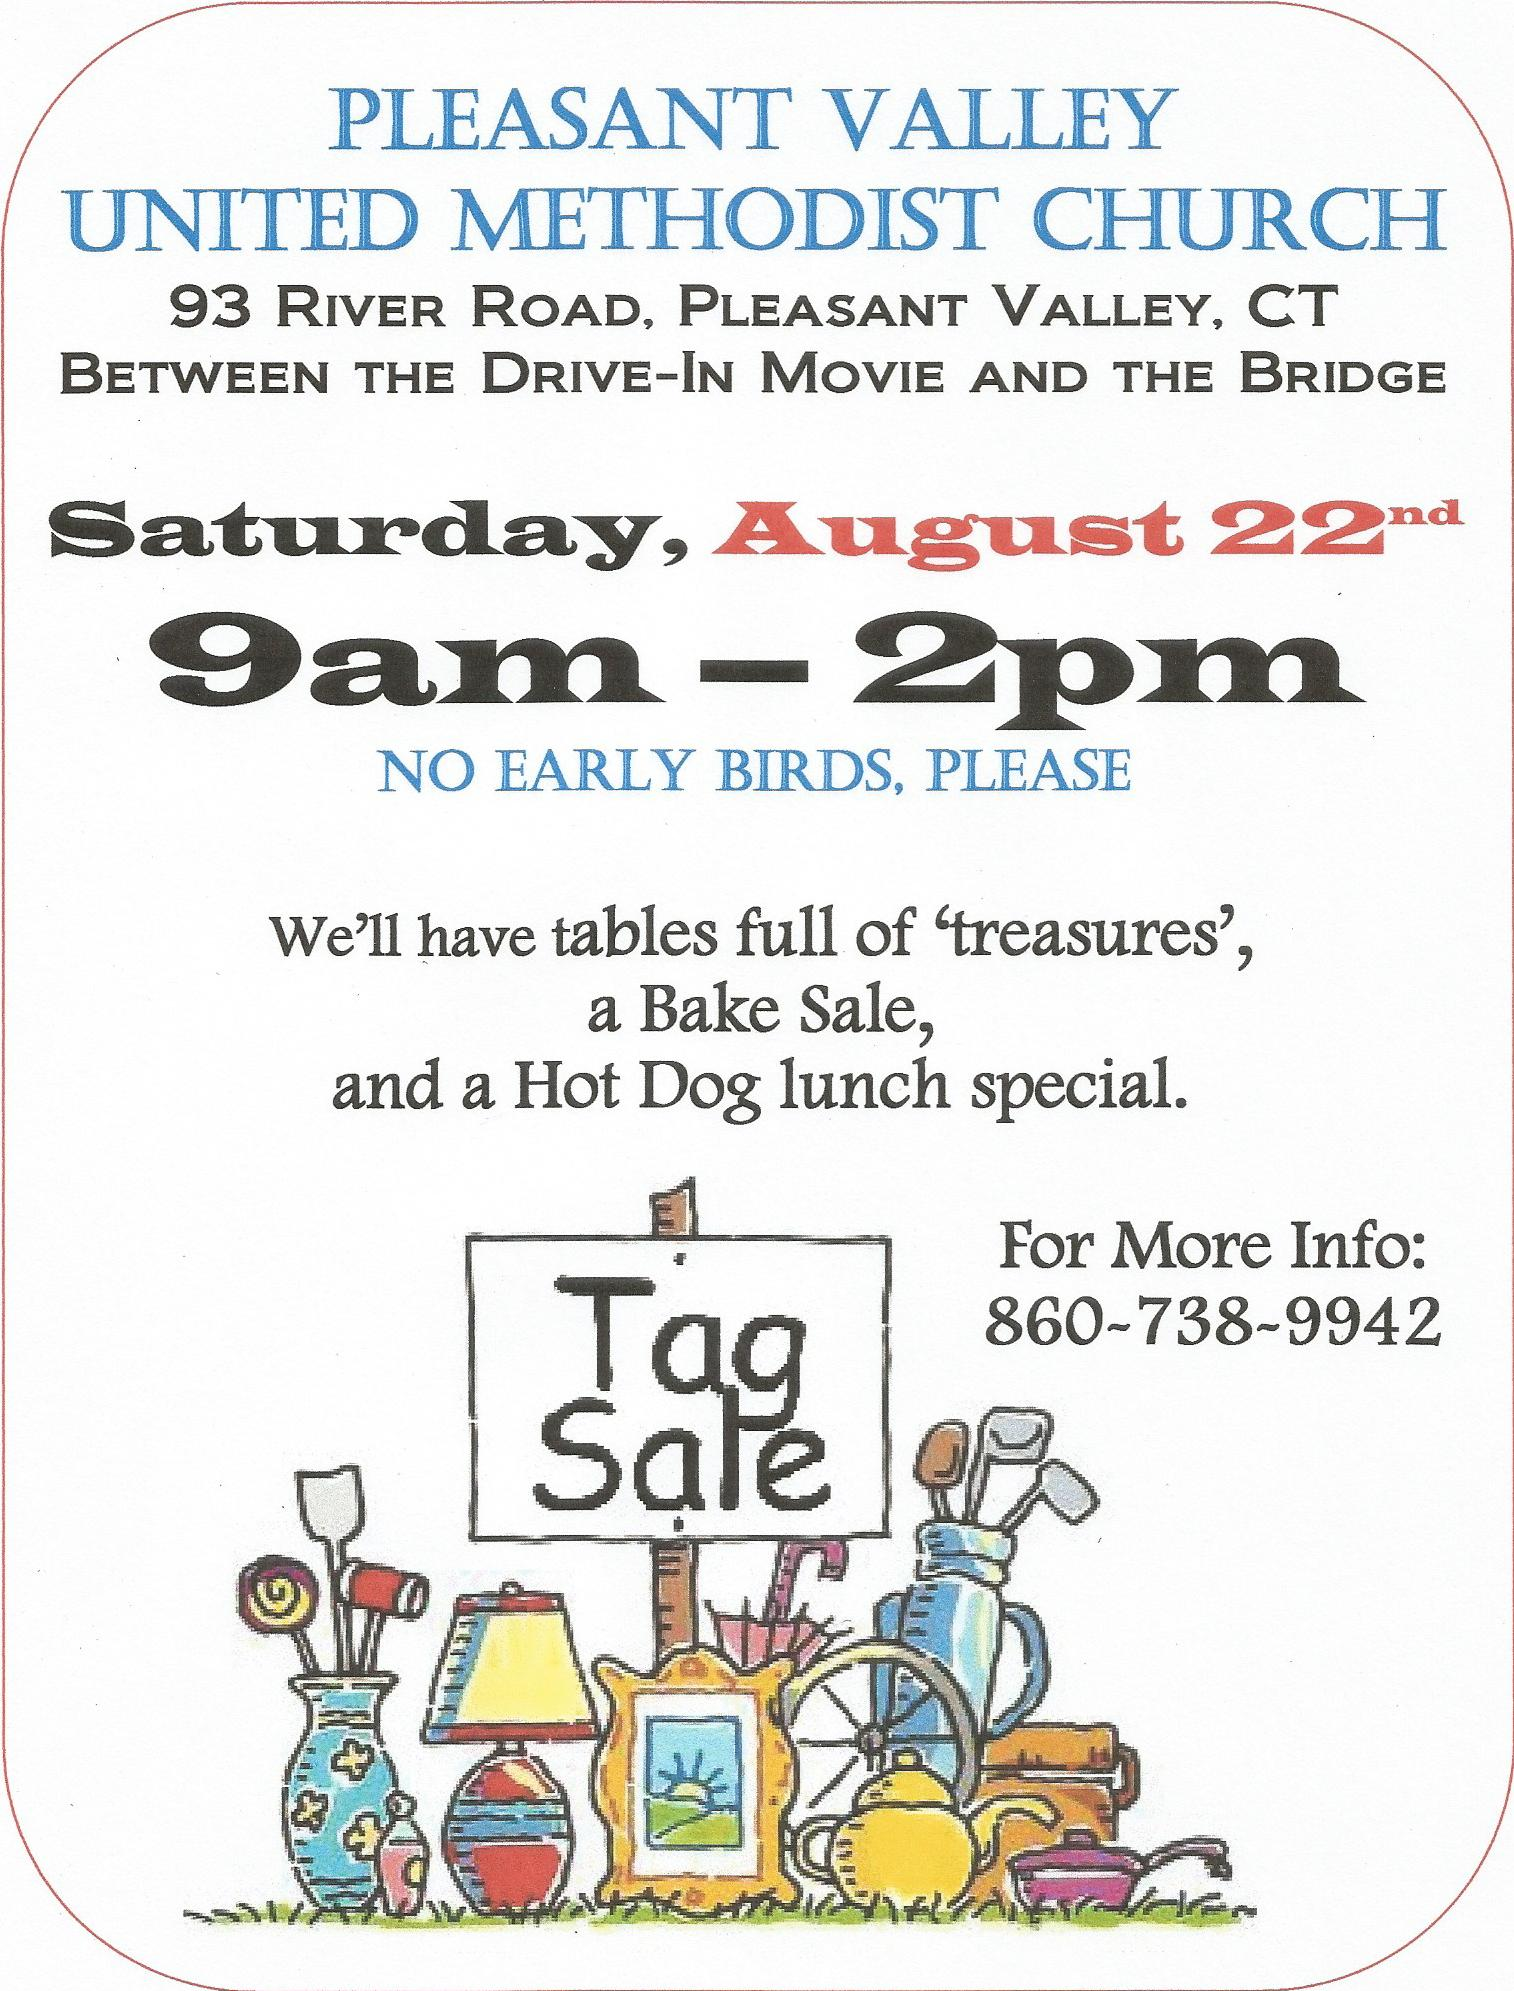 Church Tag Sale: August 22nd – Pleasant Valley United